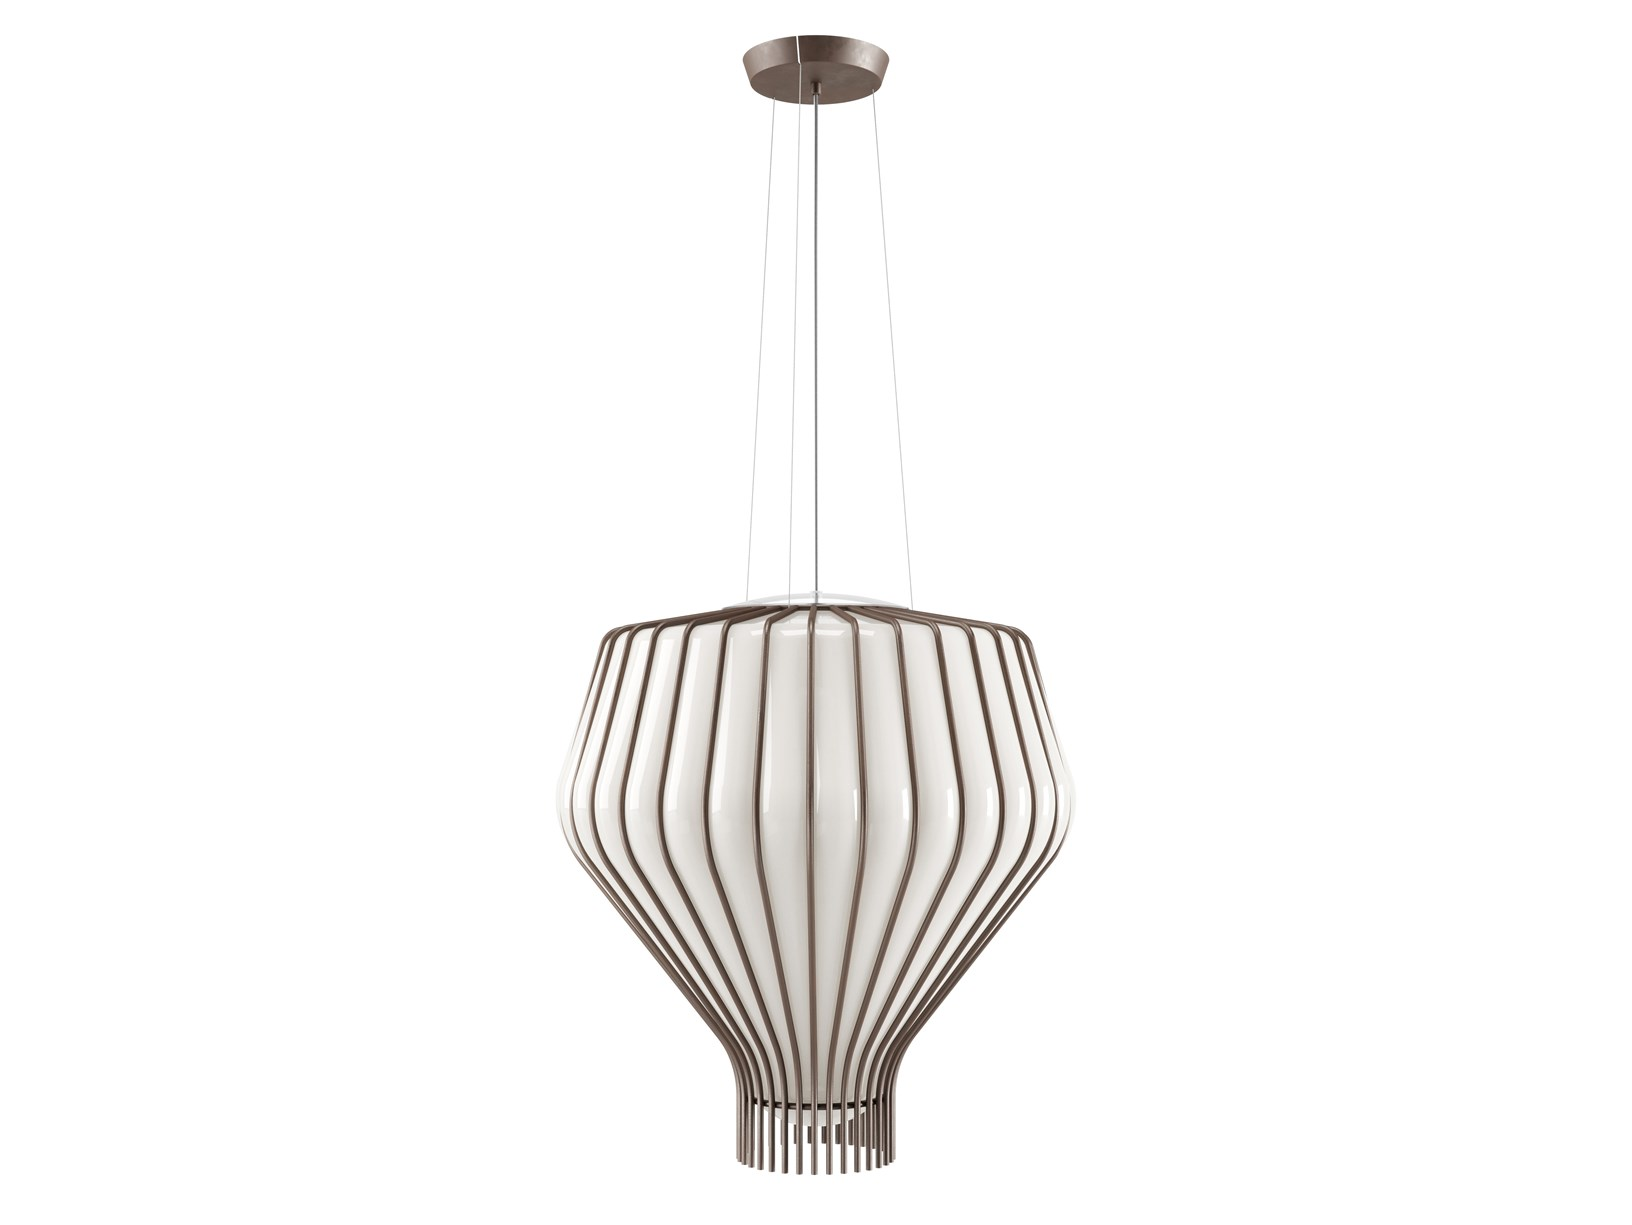 """The Indoor Hanging Lamps Collection """"Saya"""" Designed by Gio Milenni and Marco Fossati"""